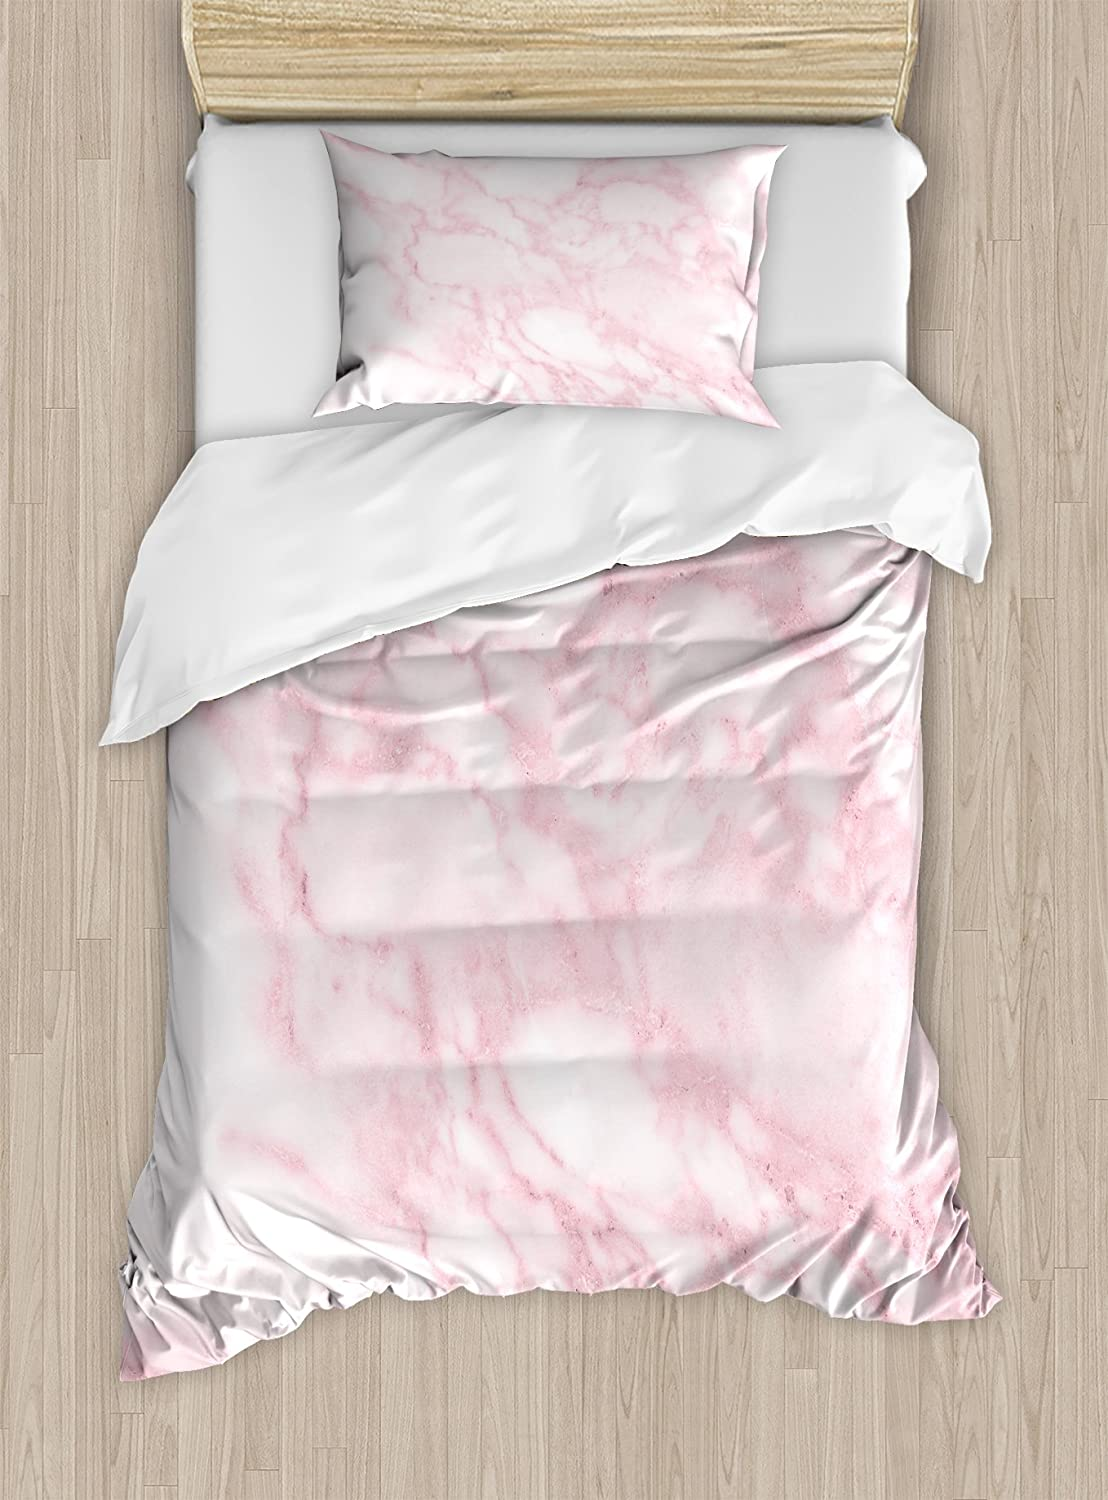 Ambesonne Marble Duvet Cover Set, Soft Granite Texture Old Fashion Space Stone Abstract Macro Scratches Girls Image, Decorative 2 Piece Bedding Set with 1 Pillow Sham, Twin Size, Pink